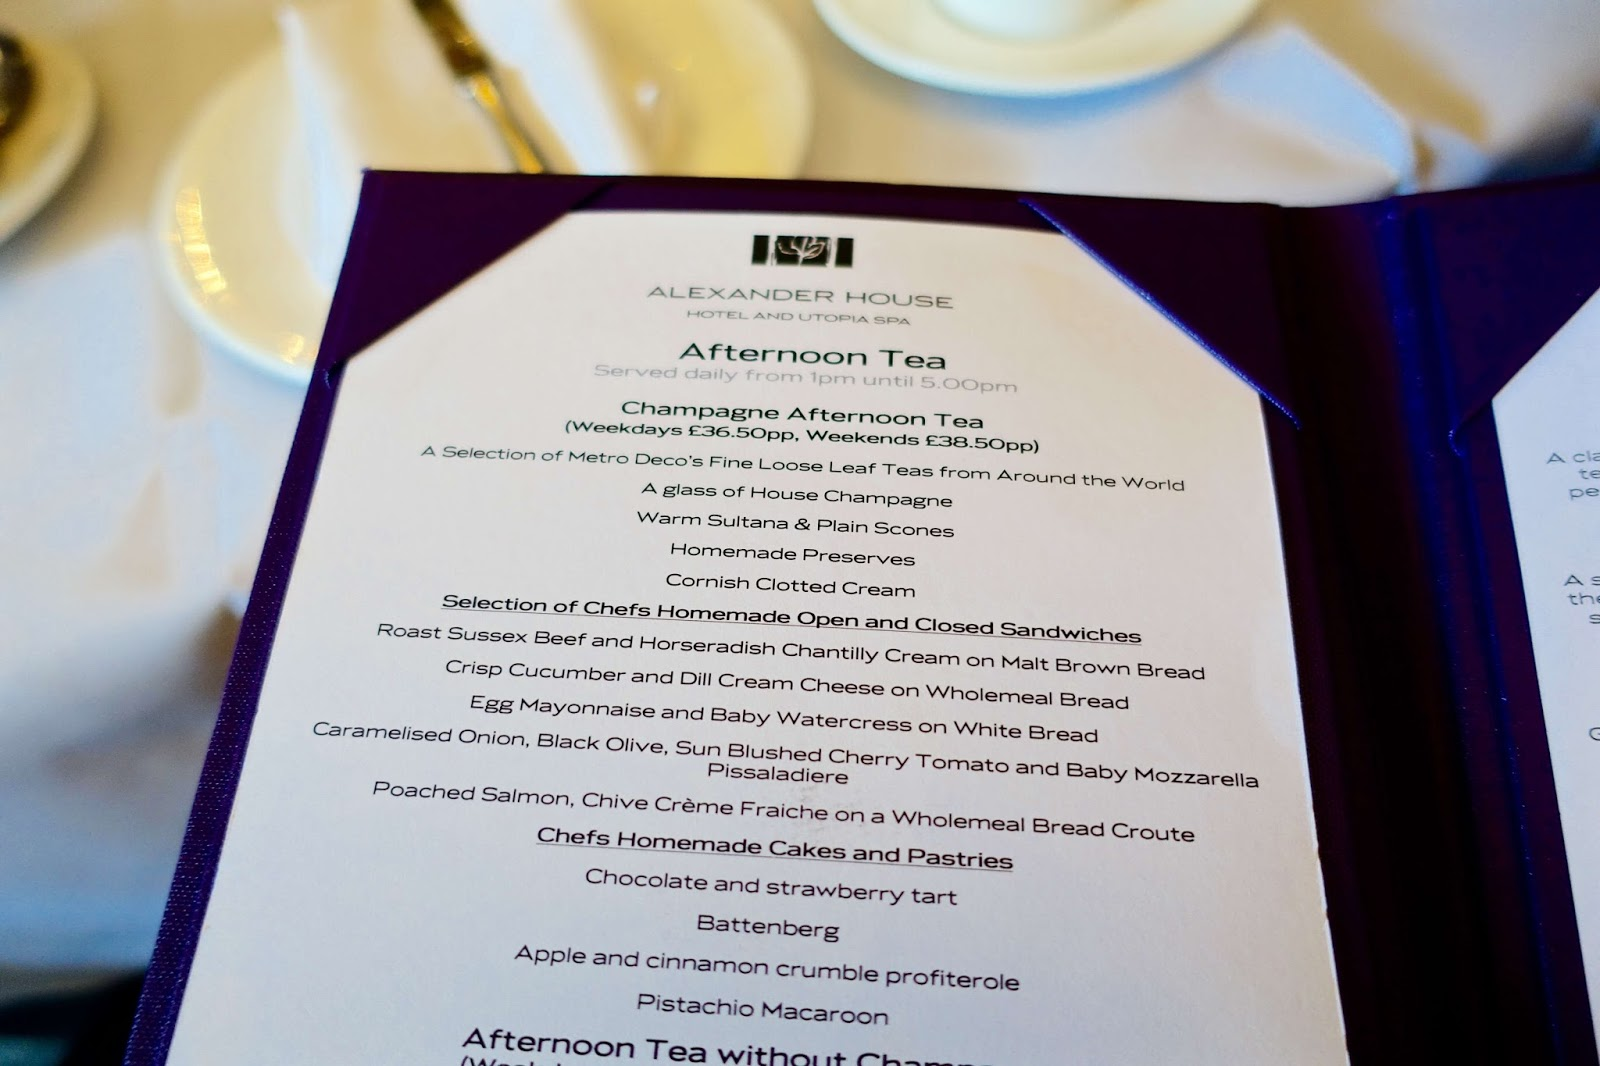 afternoon tea menu alexander house hotel